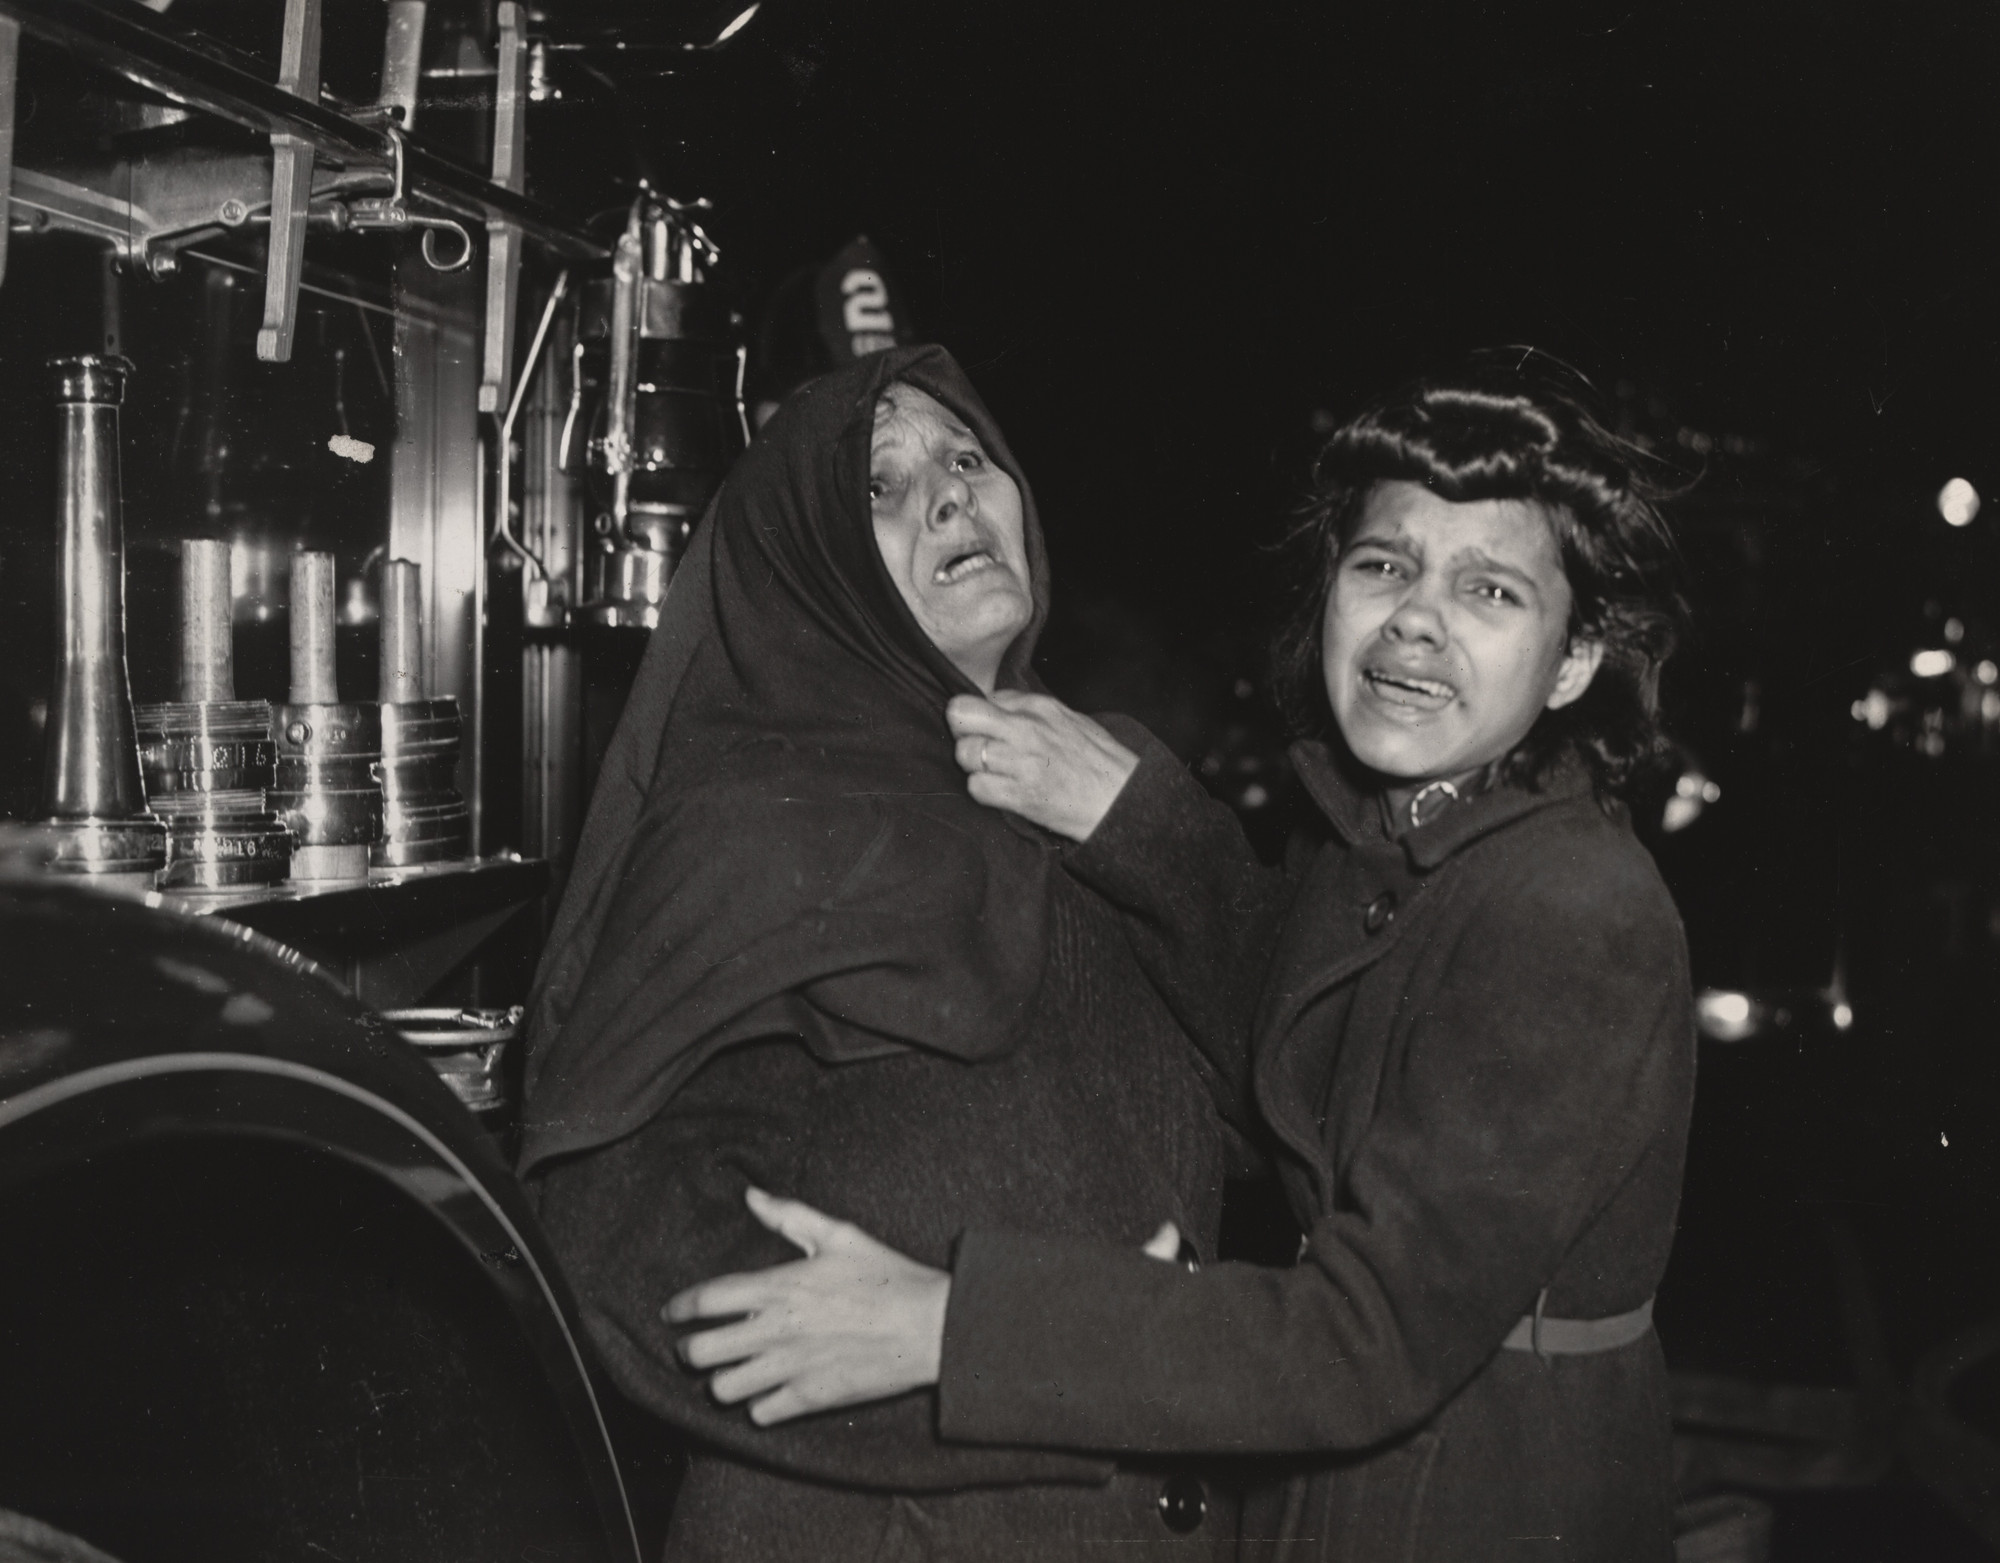 Weegee (Arthur Fellig). Tenement Fire. 1939